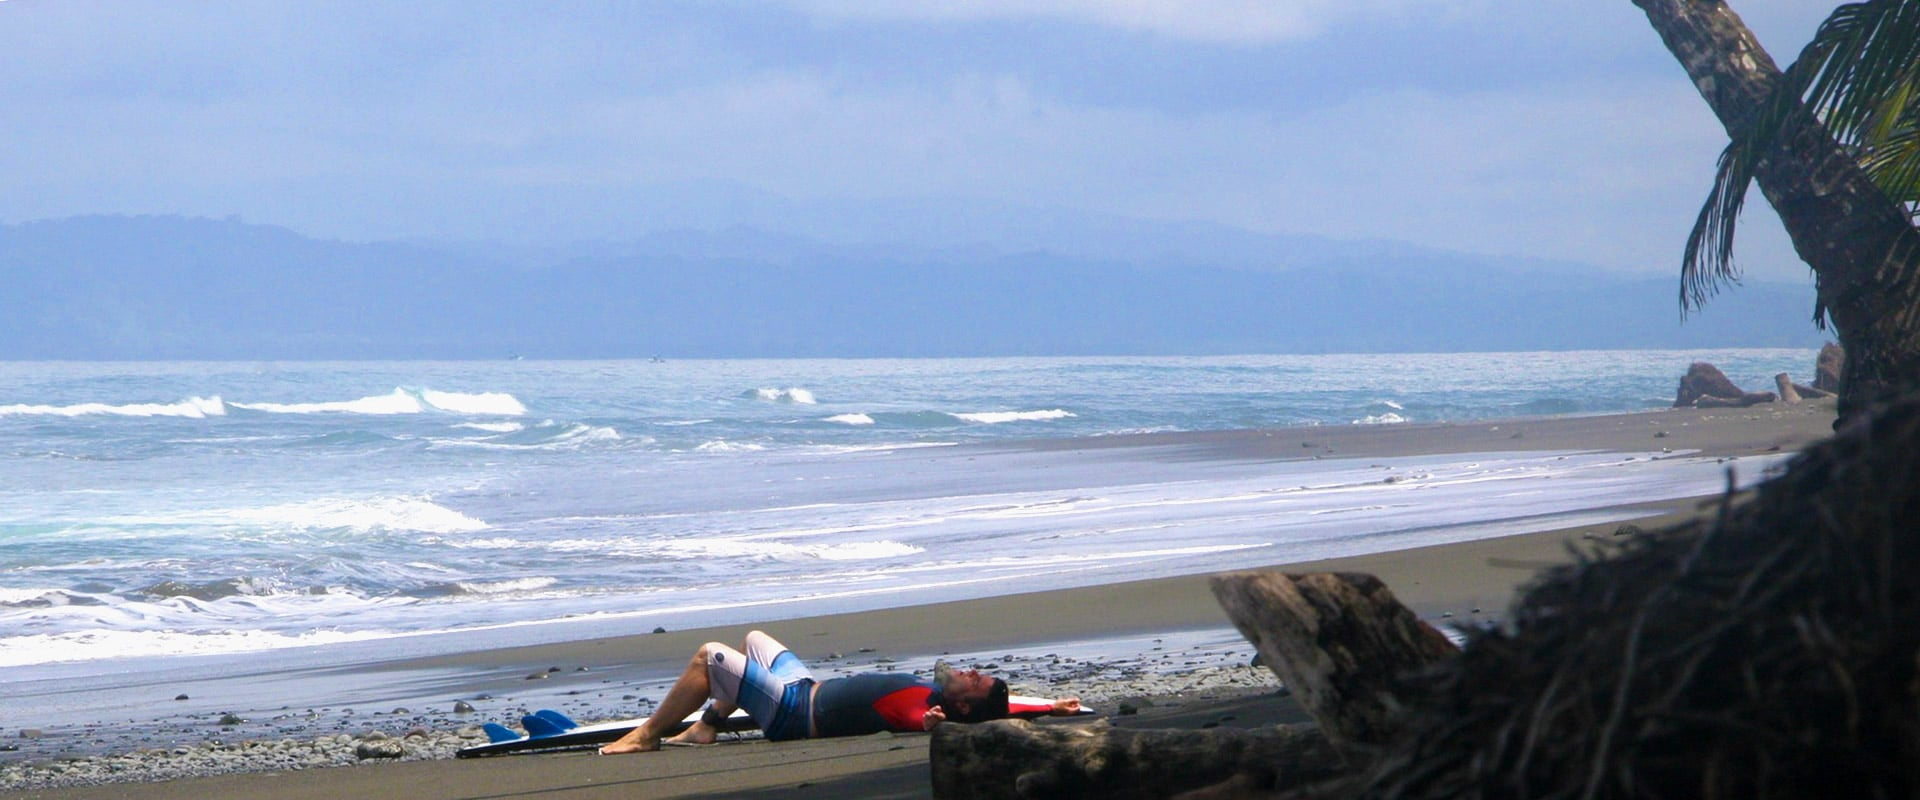 surf-expedition-costa-rica-surf-camp-surfed-out